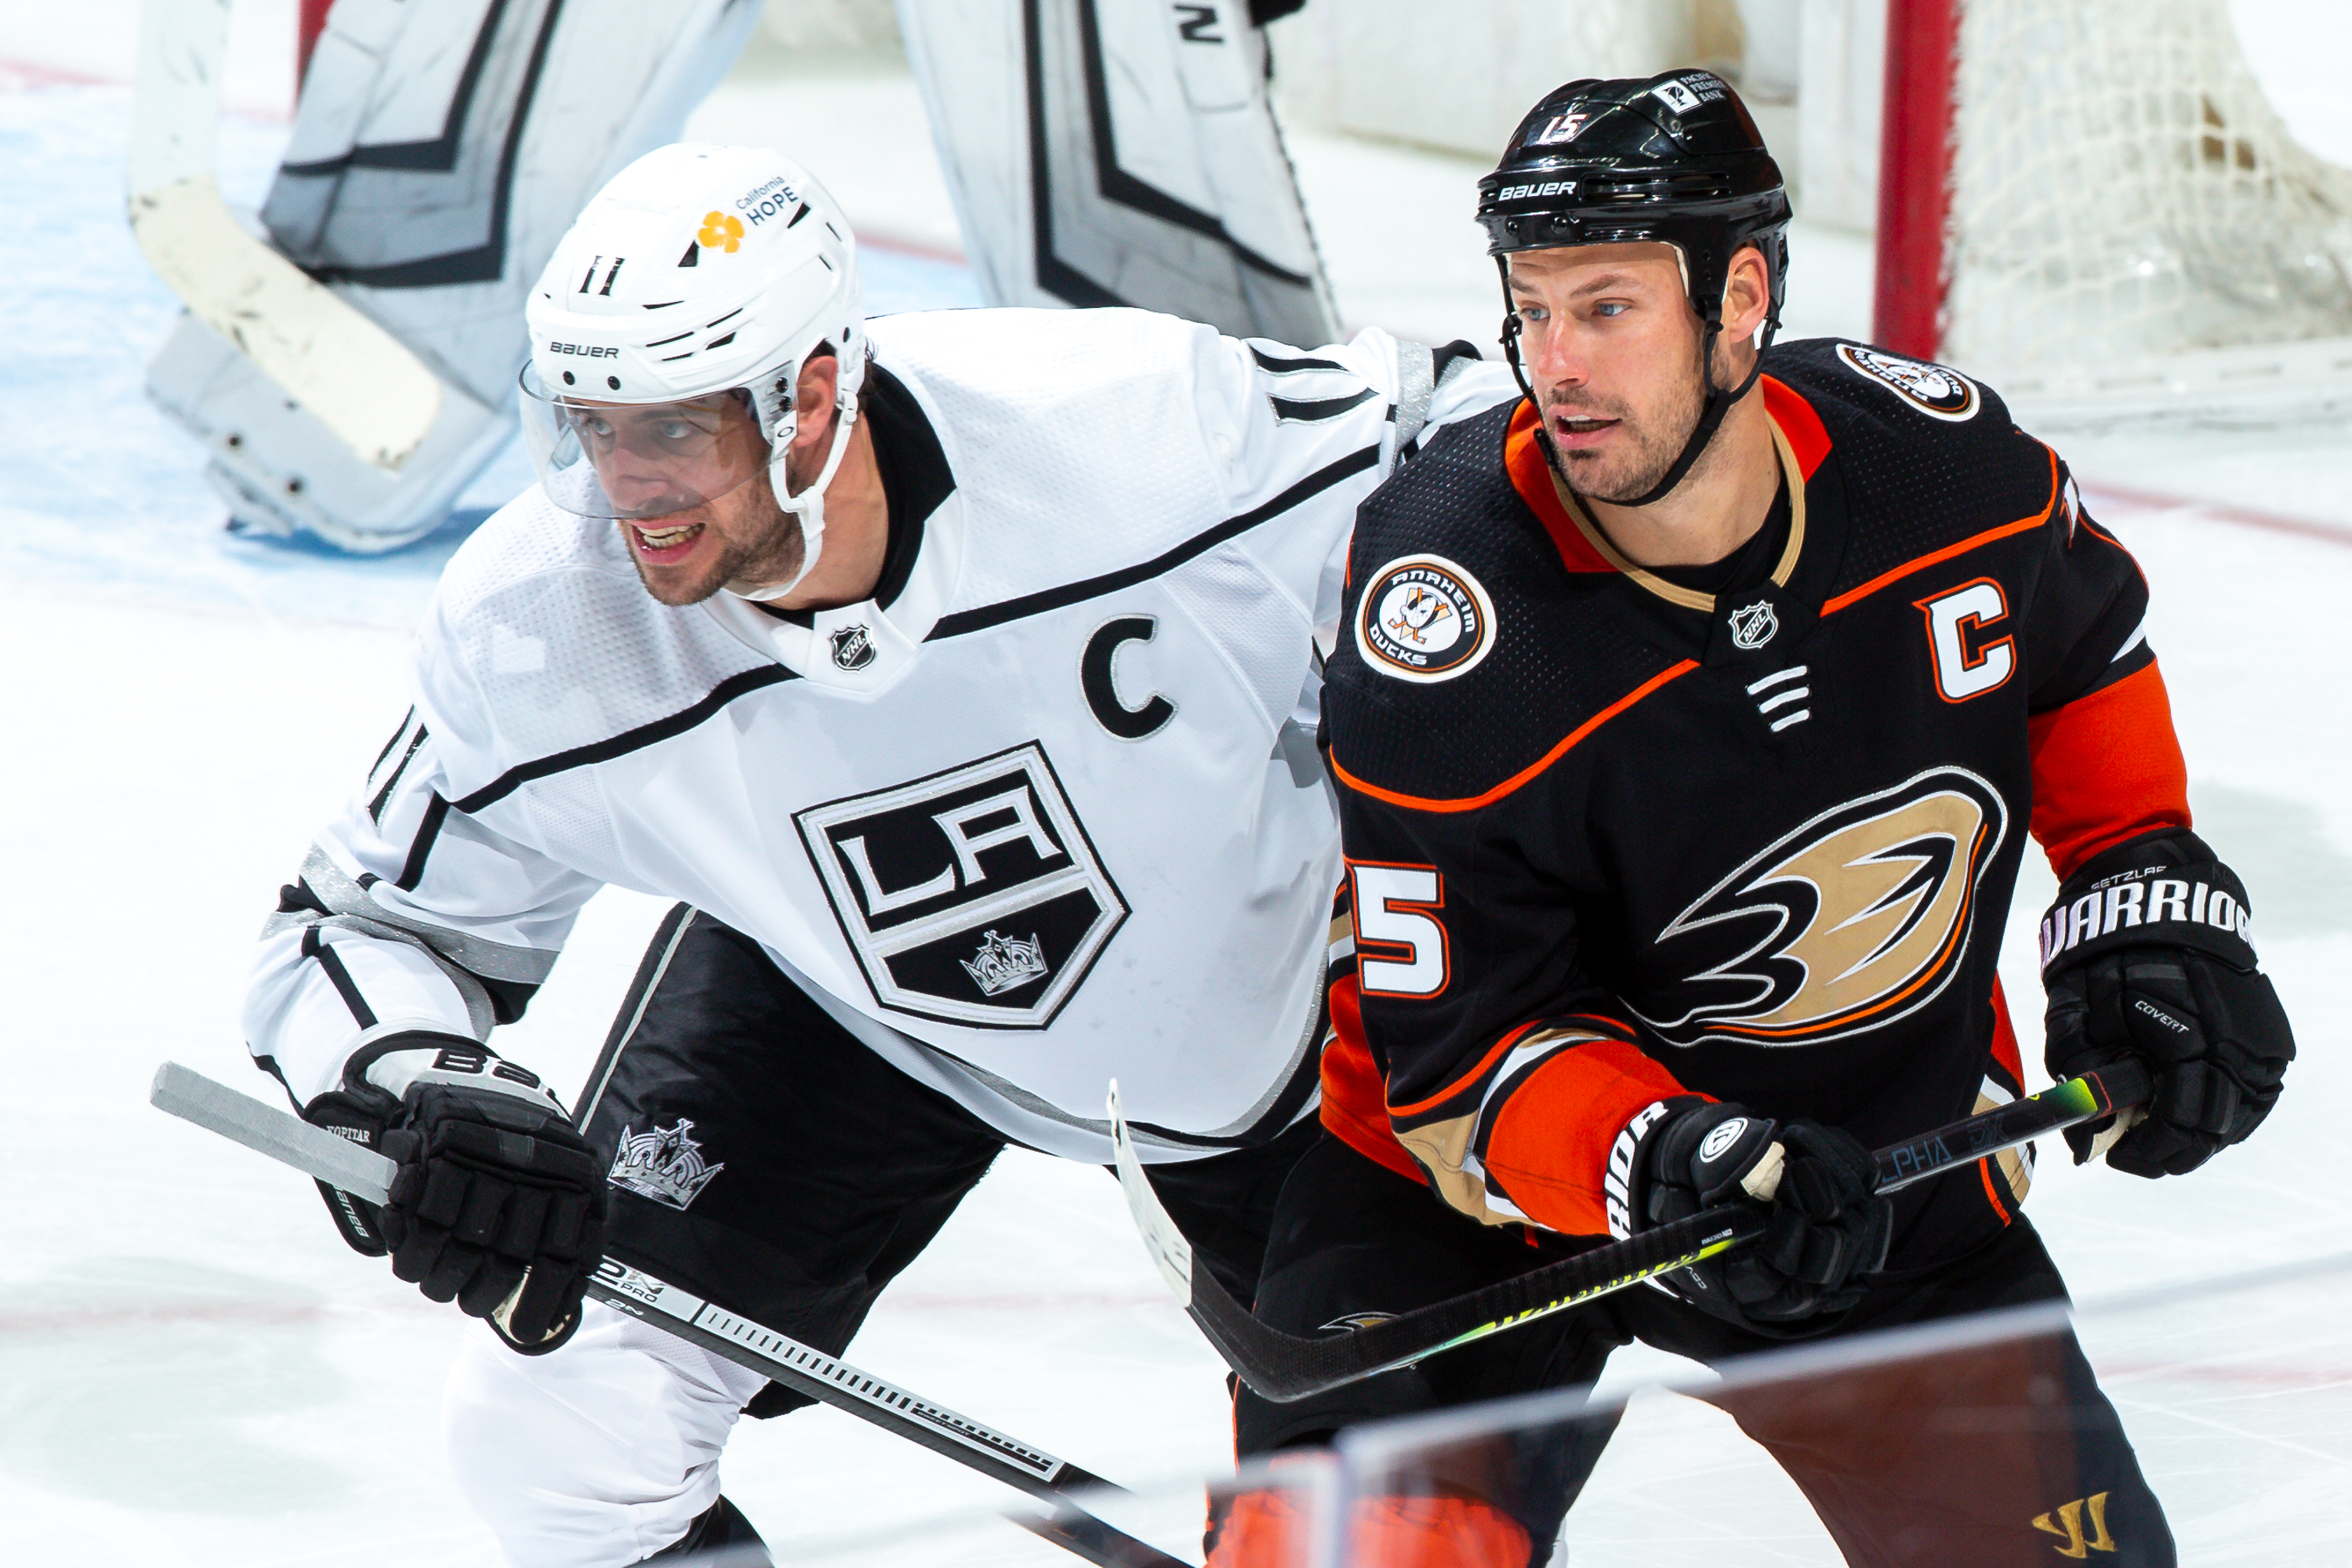 Anze Kopitar #11 of the Los Angeles Kings and Ryan Getzlaf #15 of the Anaheim Ducks battle for position during the third period of the game at Honda Center on March 10, 2021 in Anaheim, California.